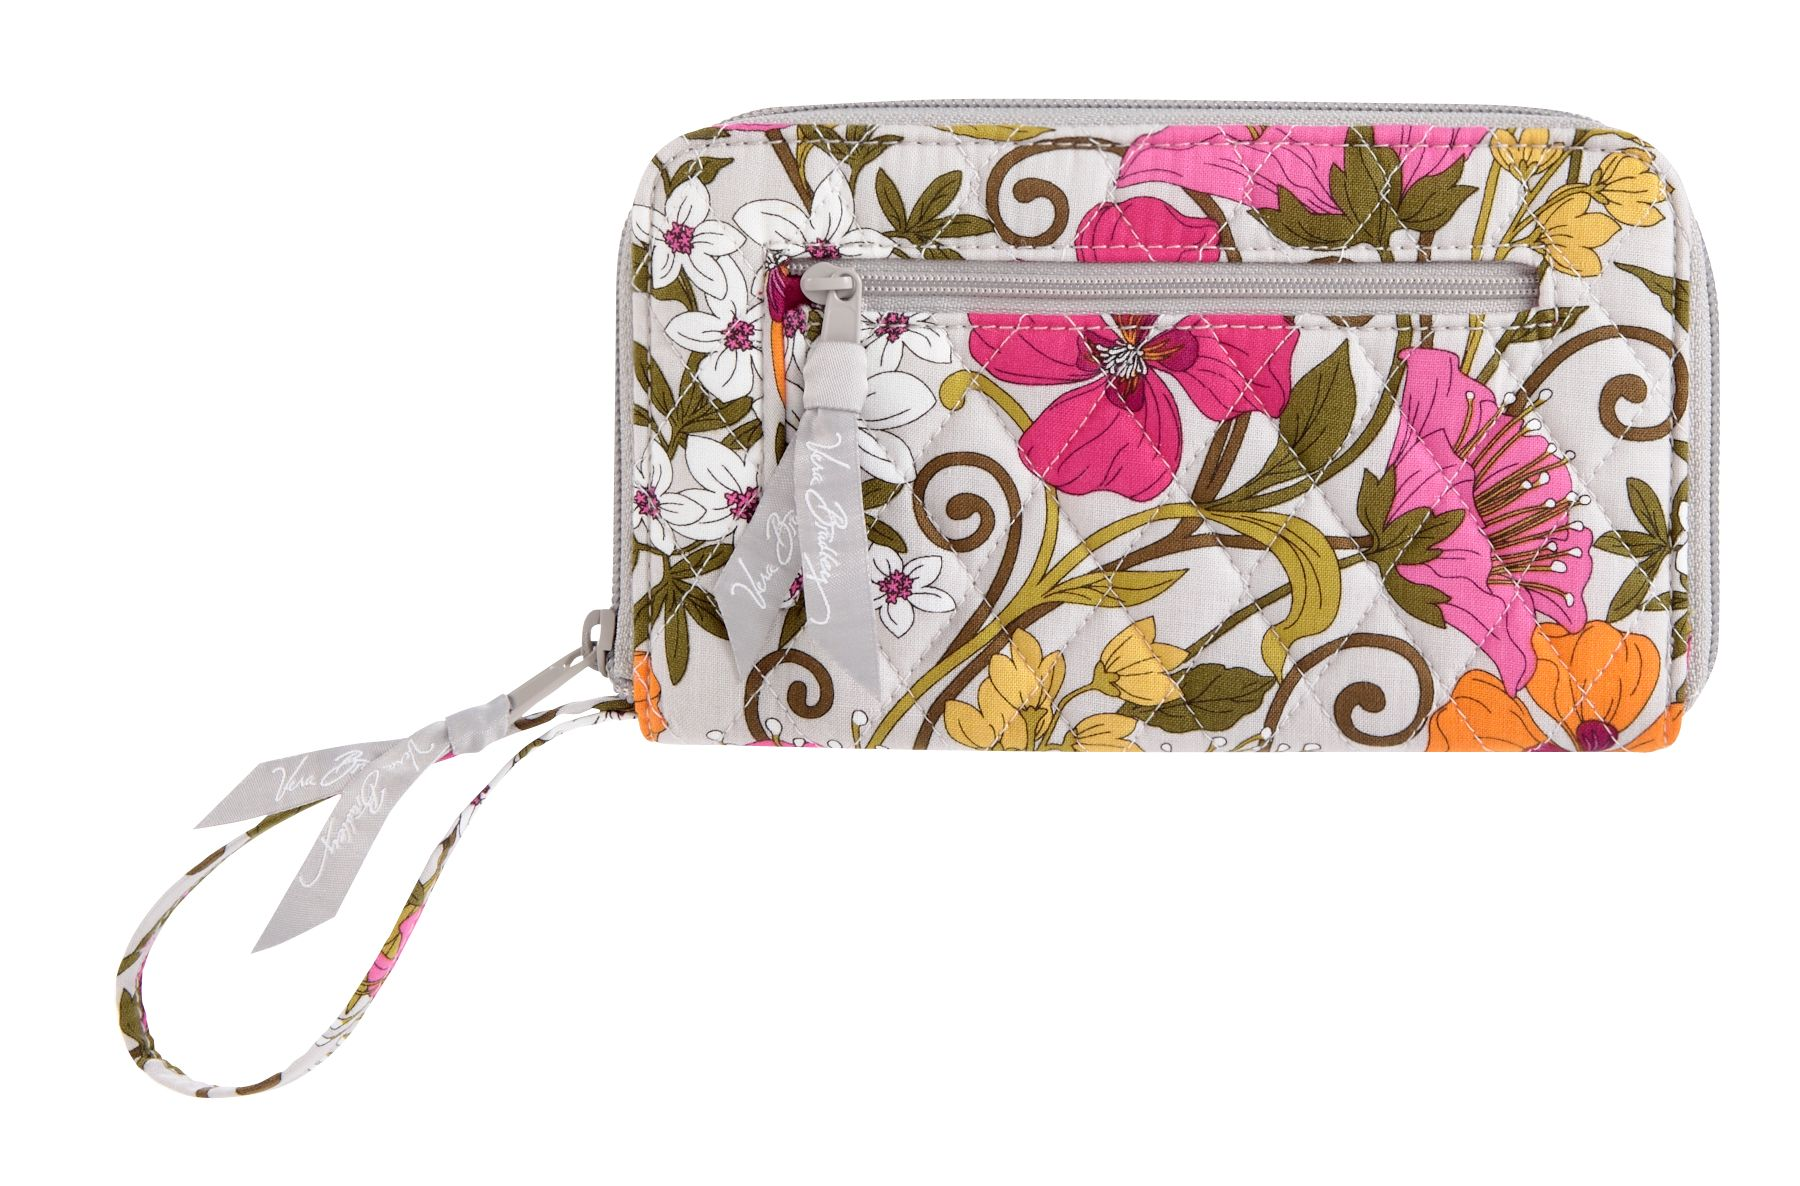 Vera Bradley Zip-Around Wallet in Tea Garden